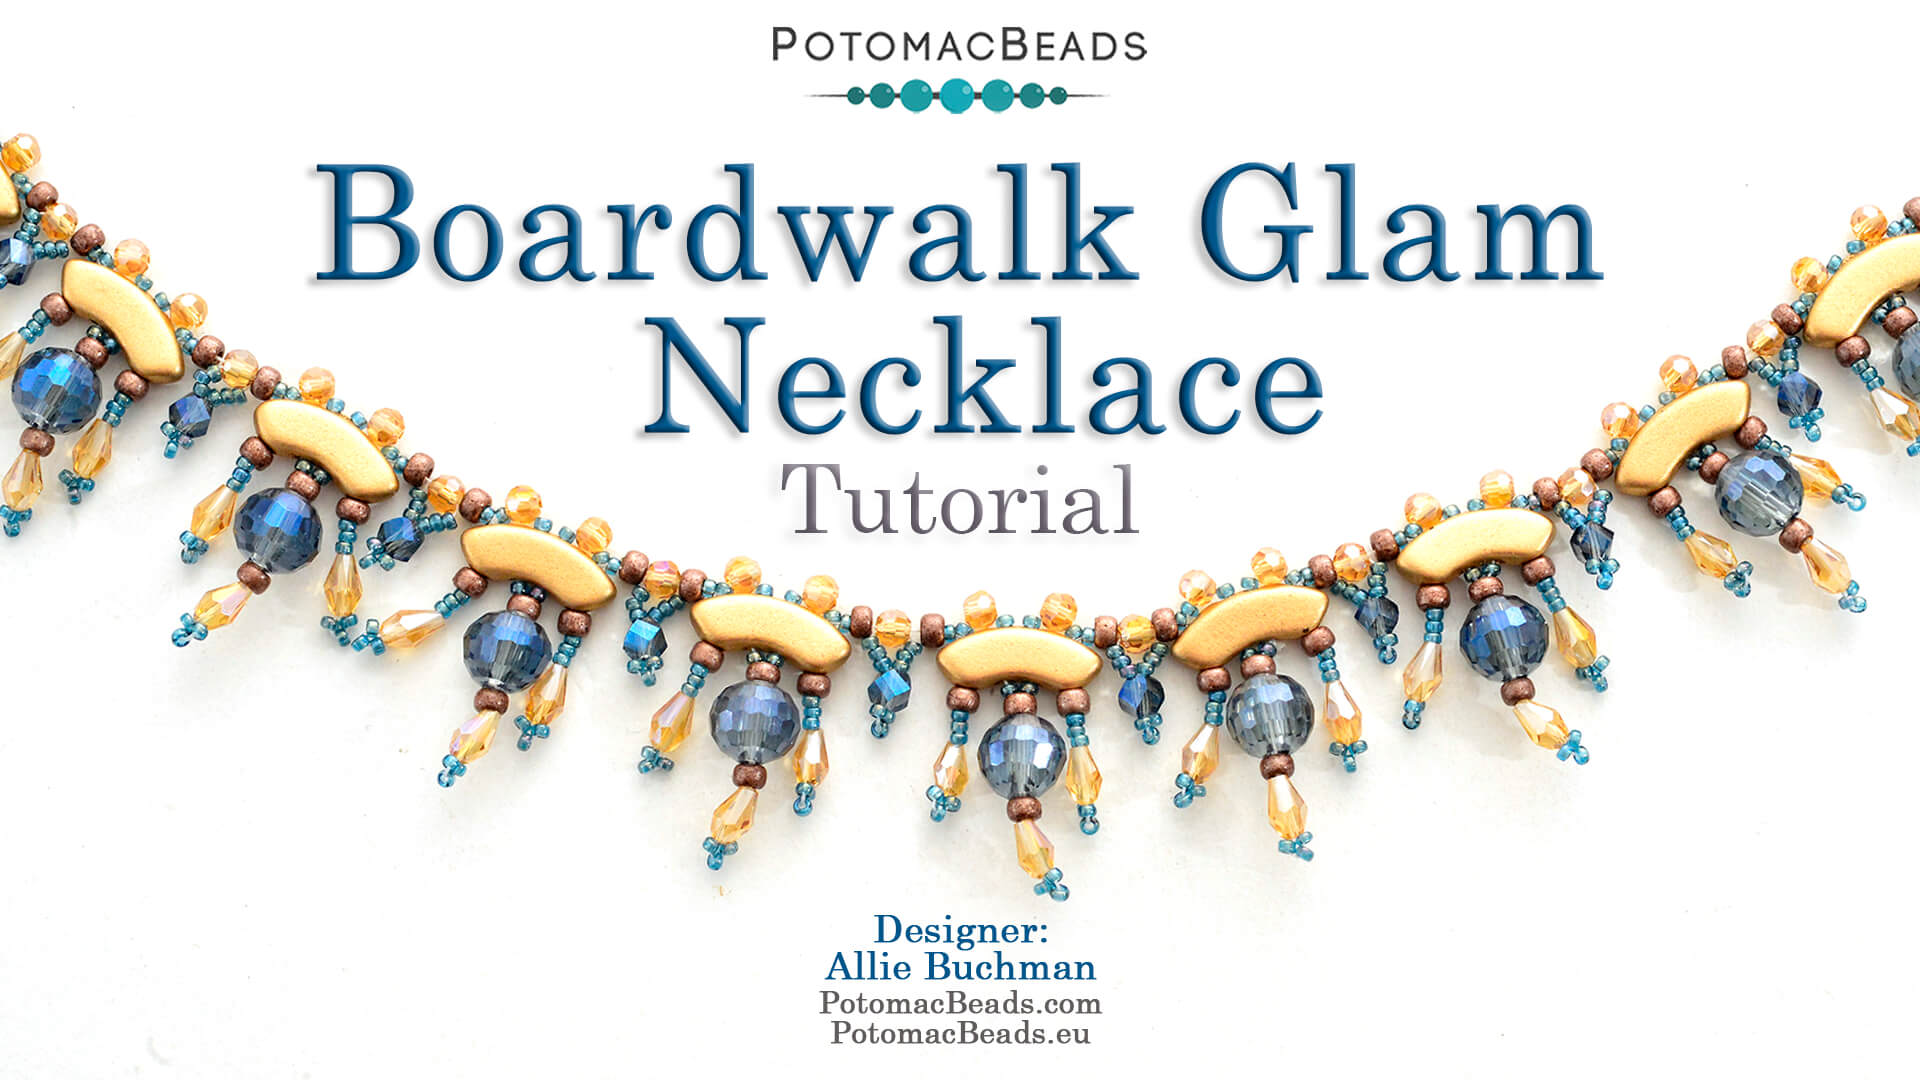 How to Bead Jewelry / Videos Sorted by Beads / Potomac Crystal Videos / Boardwalk Glam Necklace Tutorial